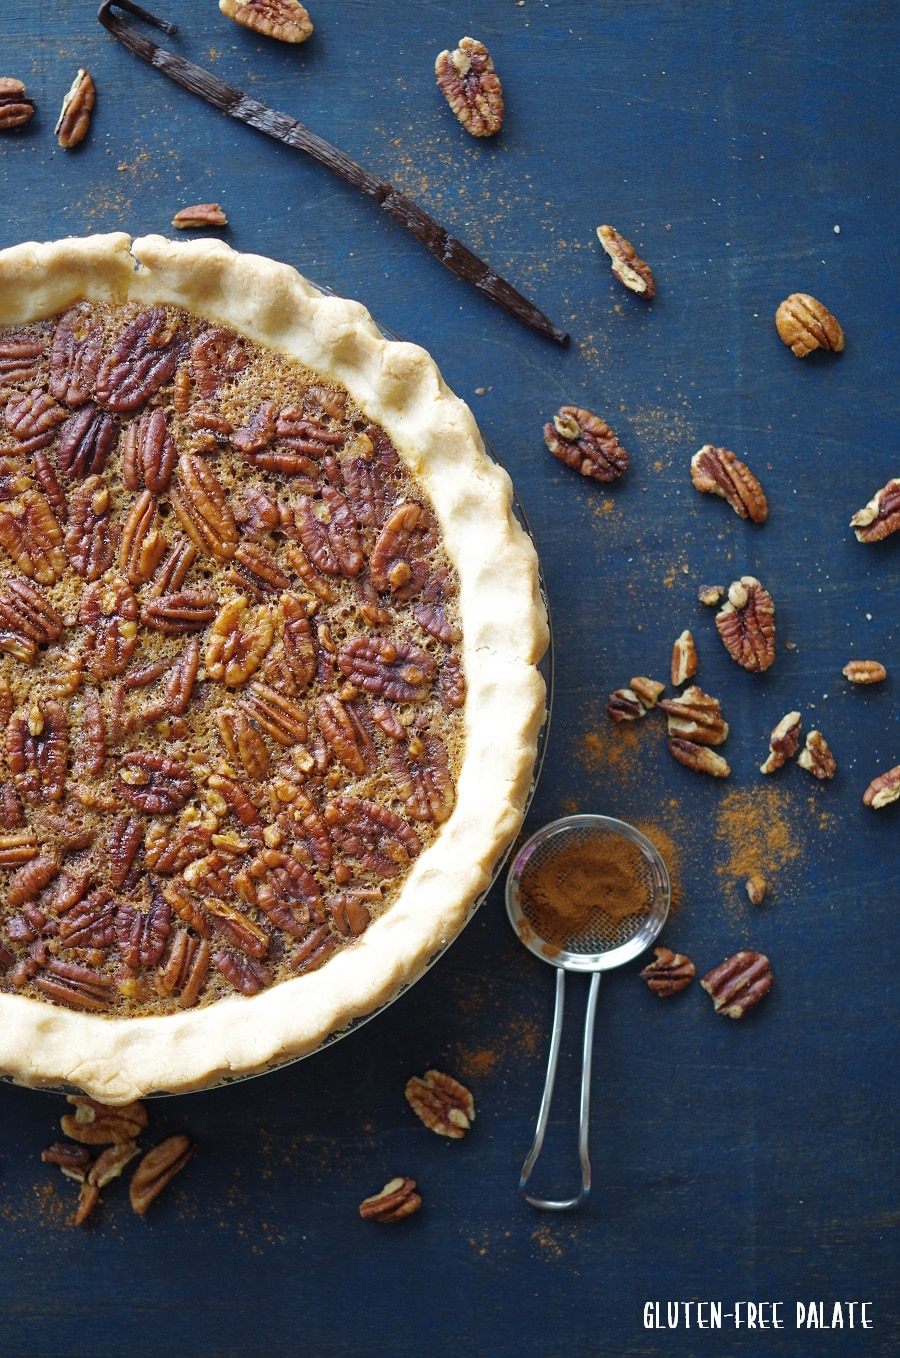 a top down view of a Gluten-Free Pecan pie in a pie plate on a blue background with scattered pecans around it